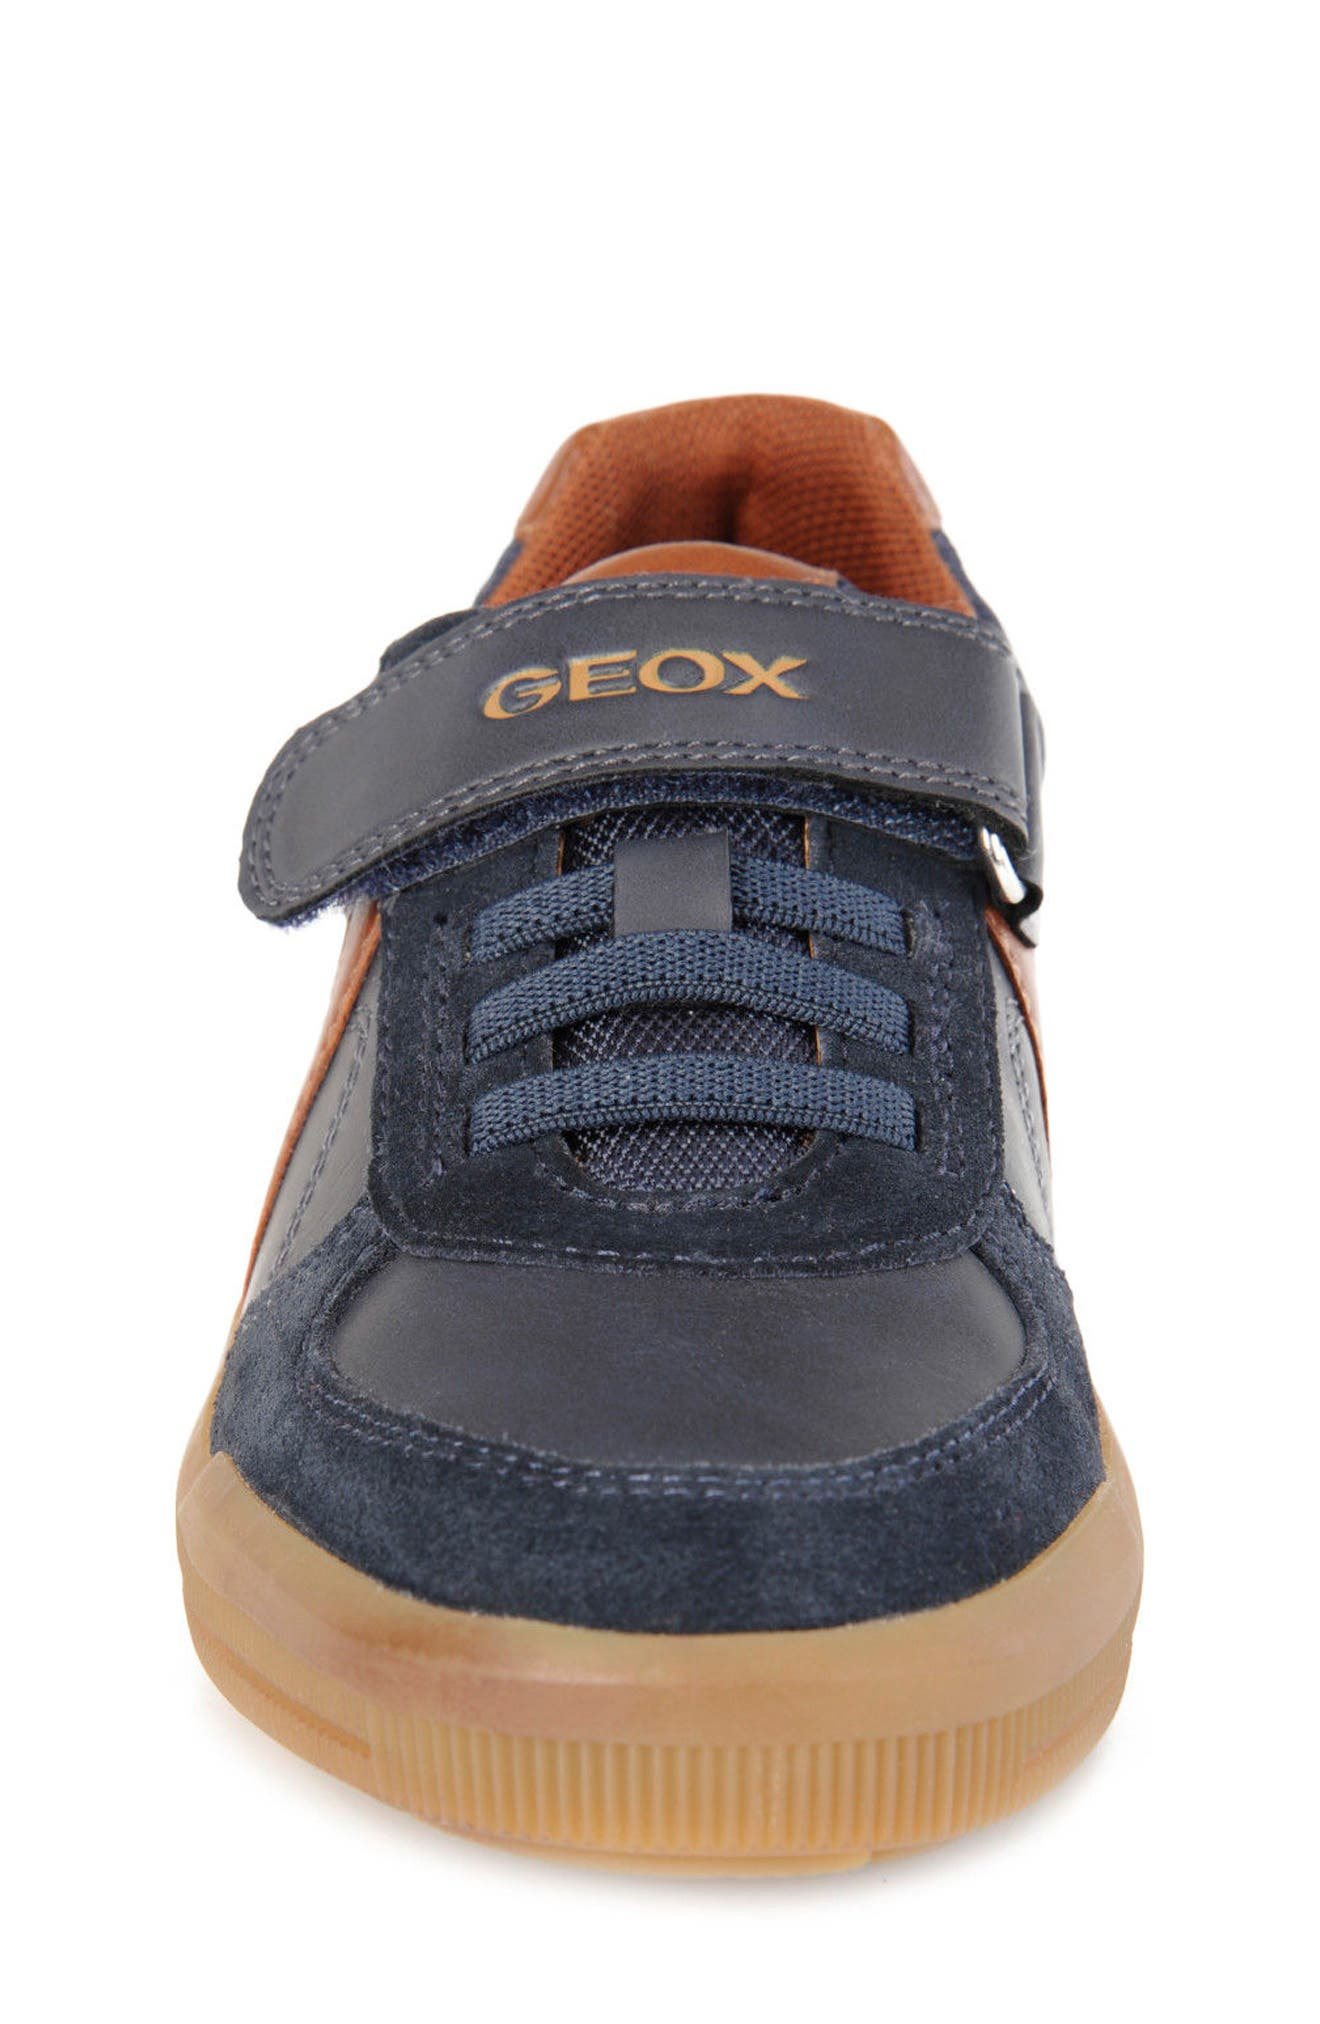 Arzach Low Top Sneaker,                             Alternate thumbnail 4, color,                             Navy/ Brown